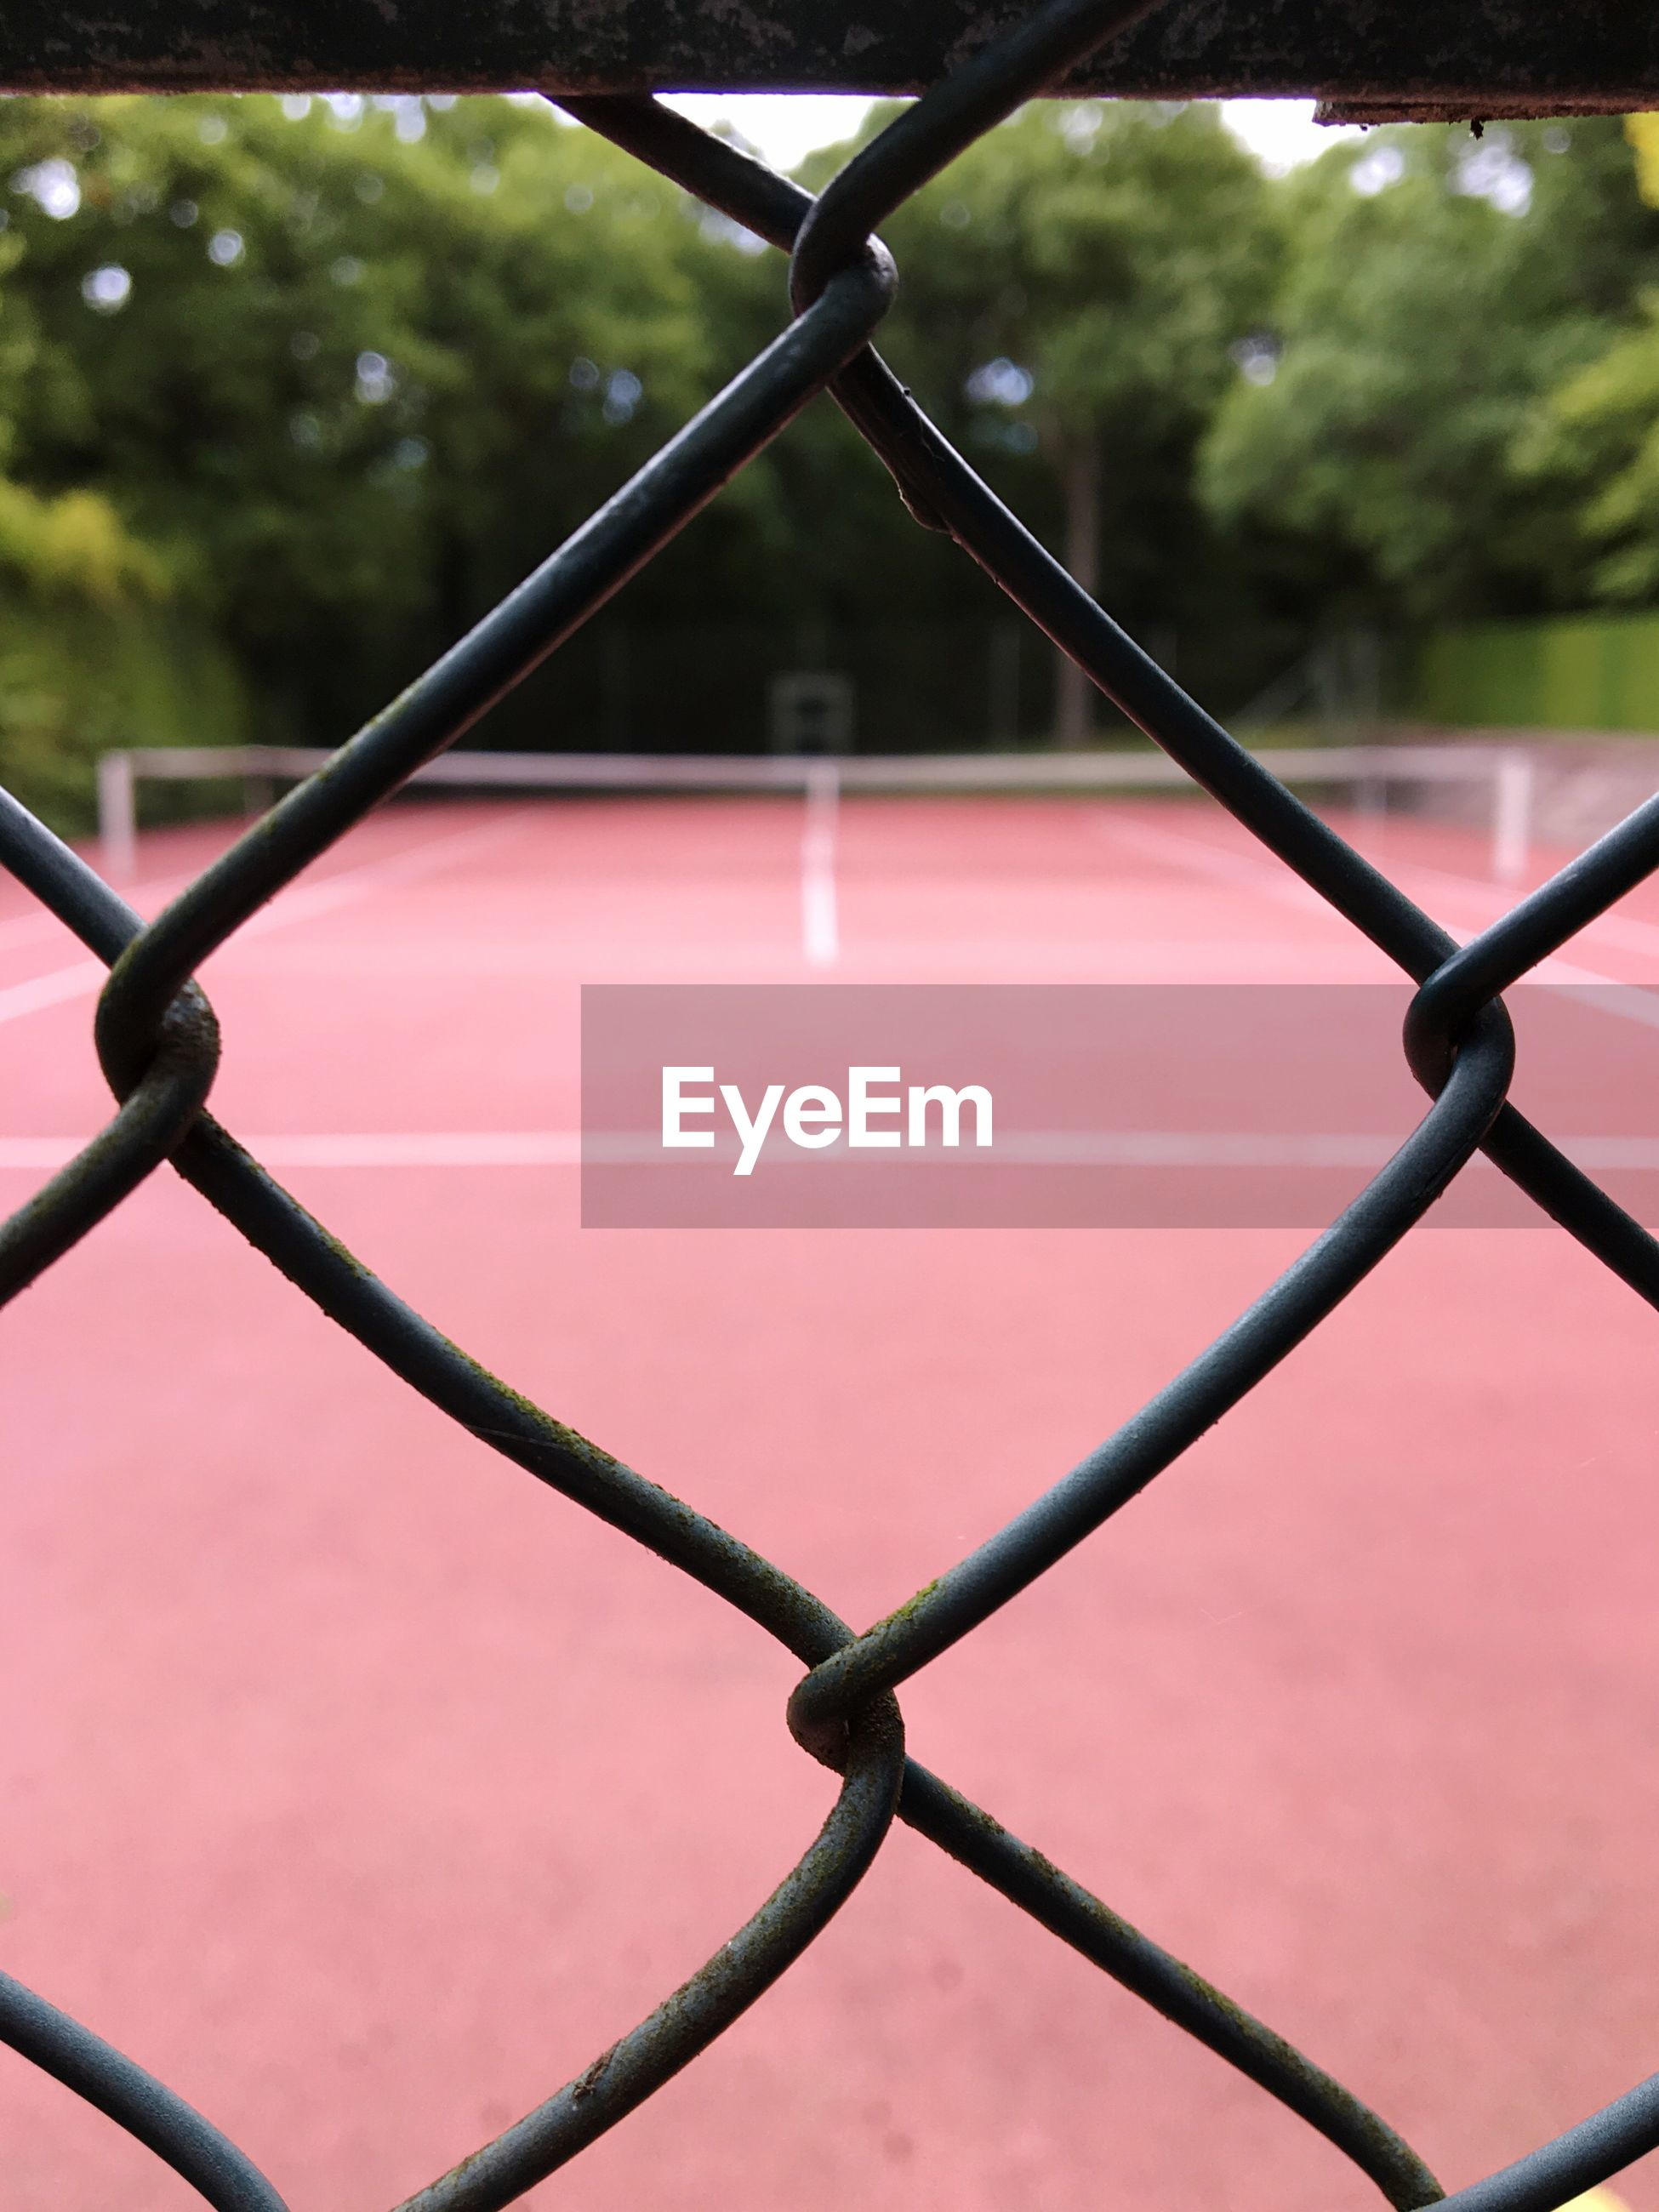 Tennis court seen through chainlink fence